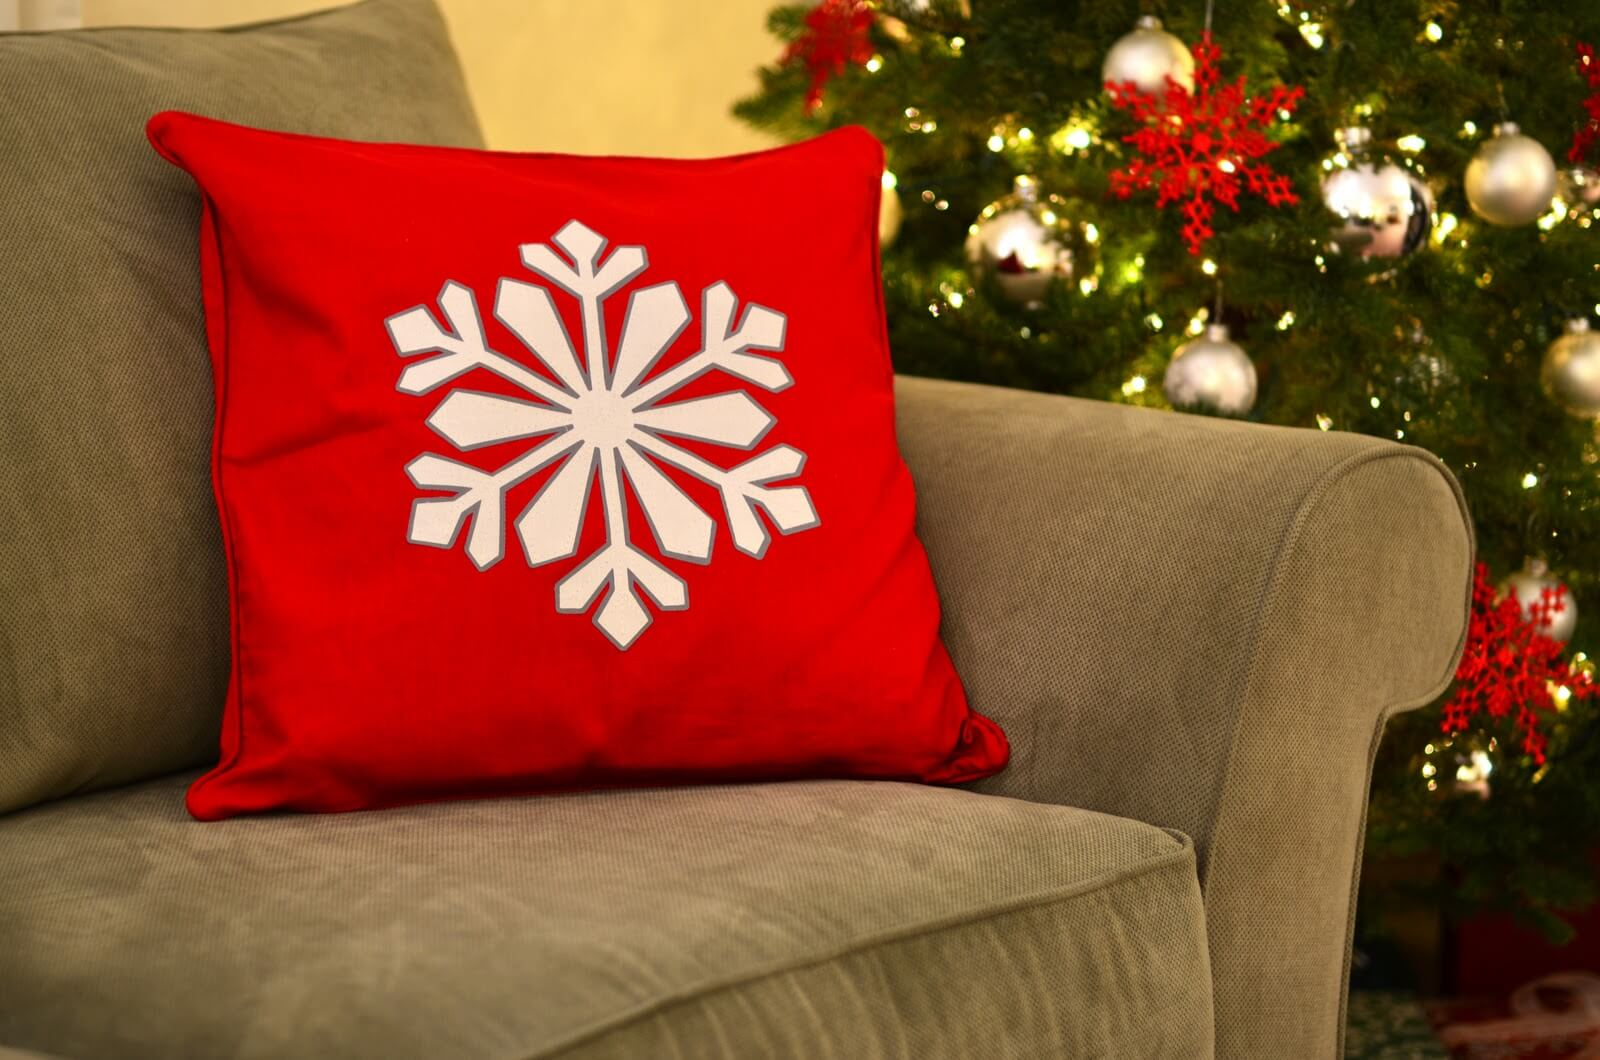 Felt Holiday Pillows - Christmas DIY